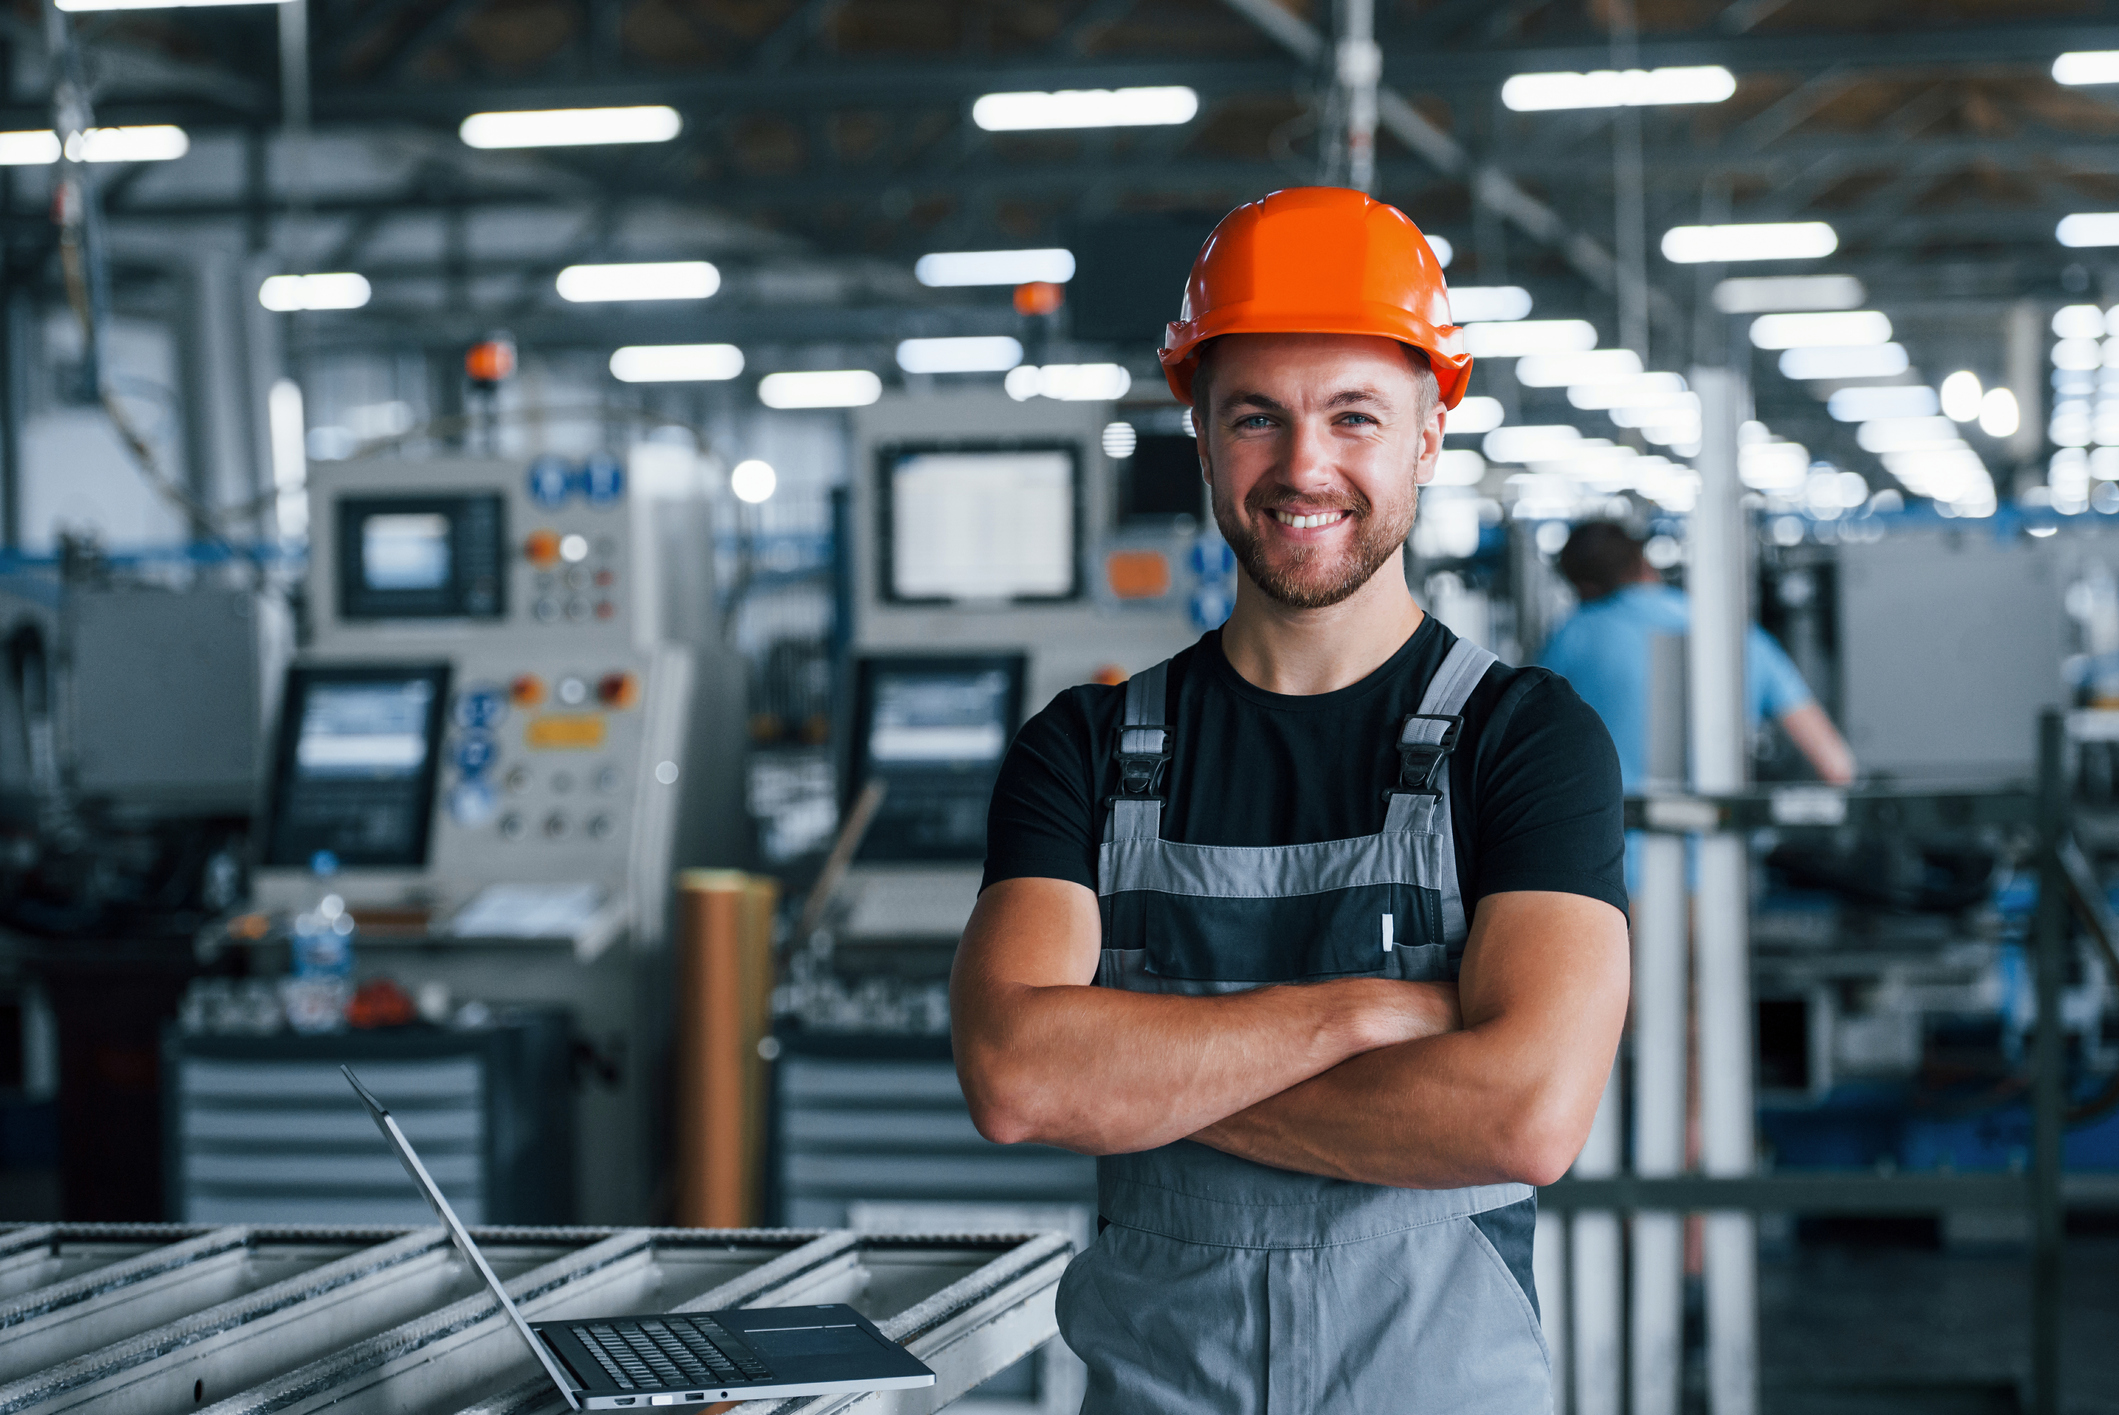 Reimagining manufacturing: using technology to revolutionize efficiency, cost control and supply chain credibility